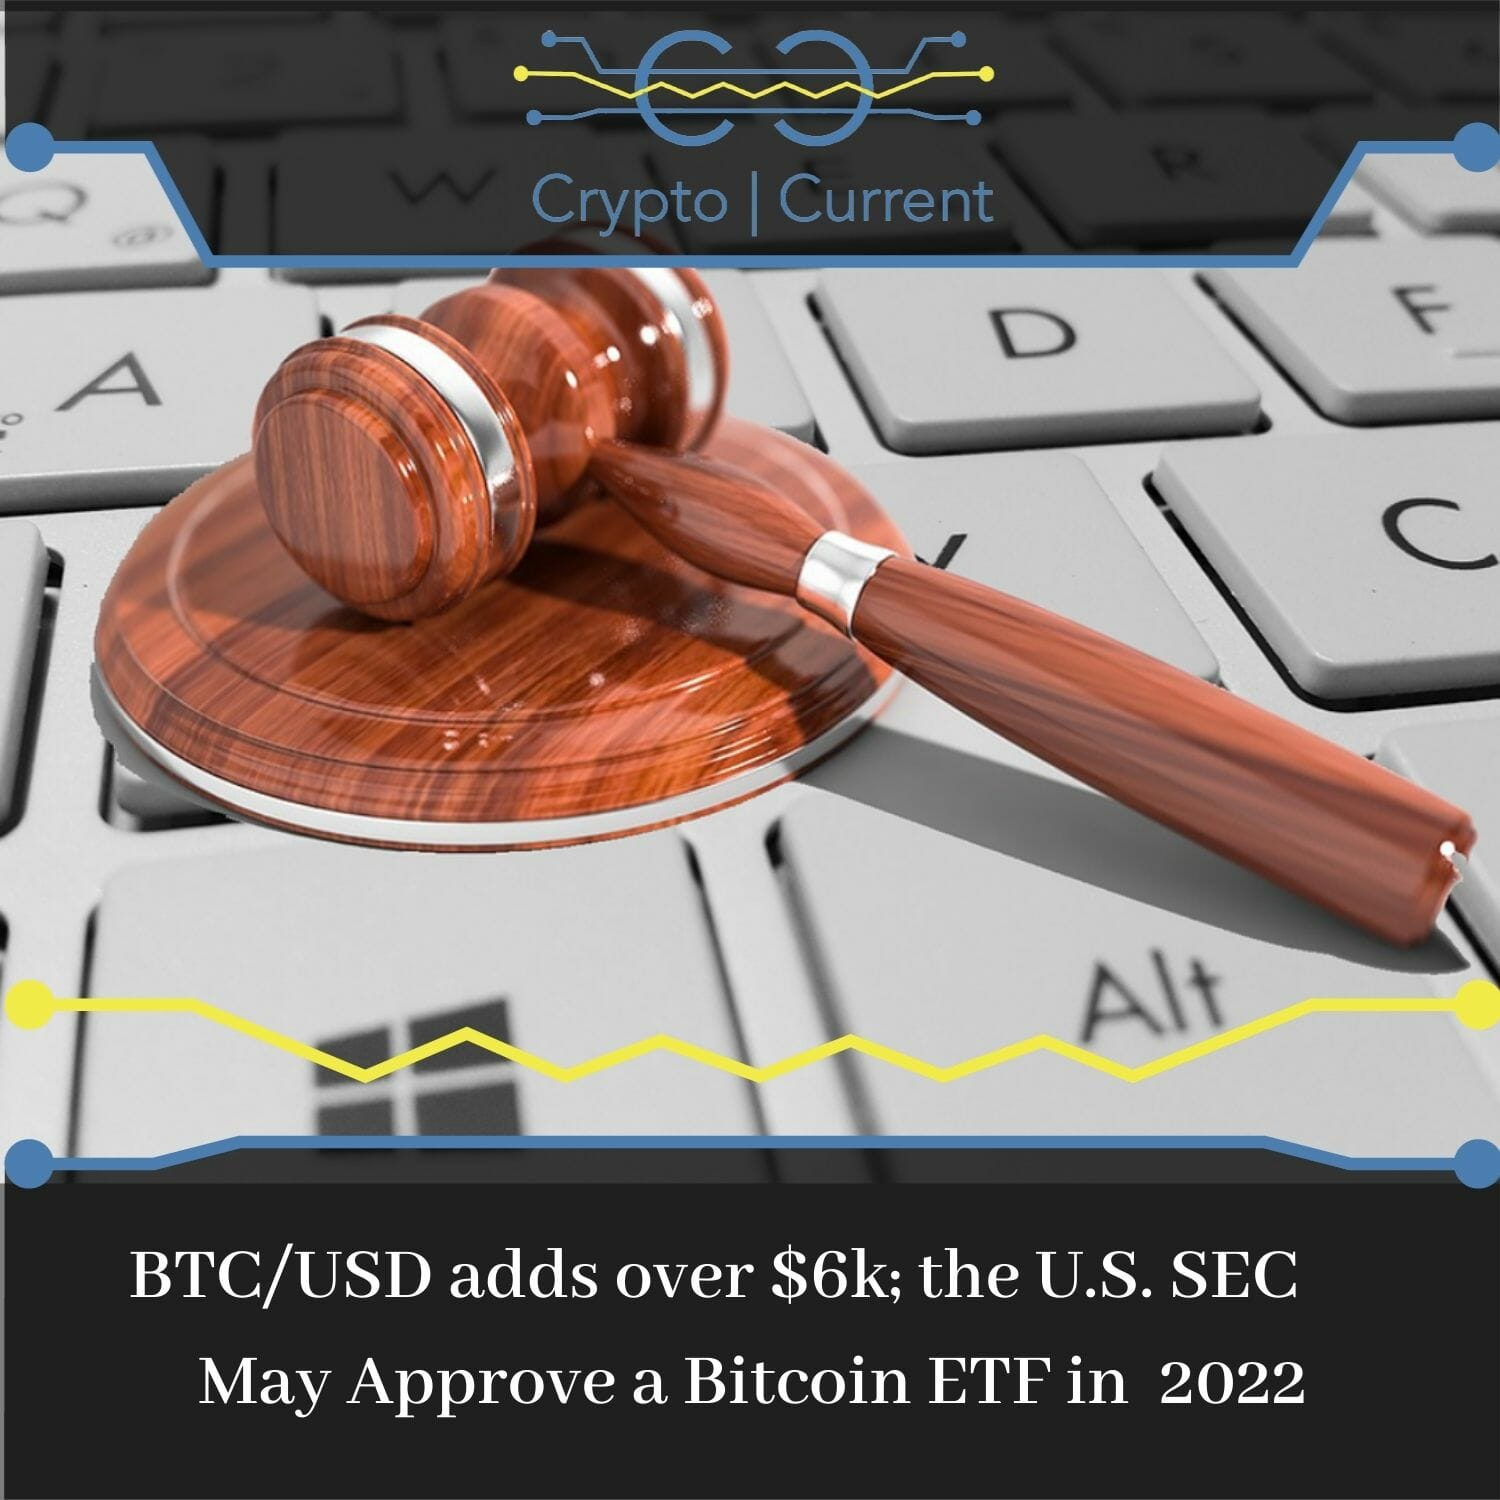 BTC/USD adds over $6k; the U.S. SEC May Approve a Bitcoin ETF in 2022